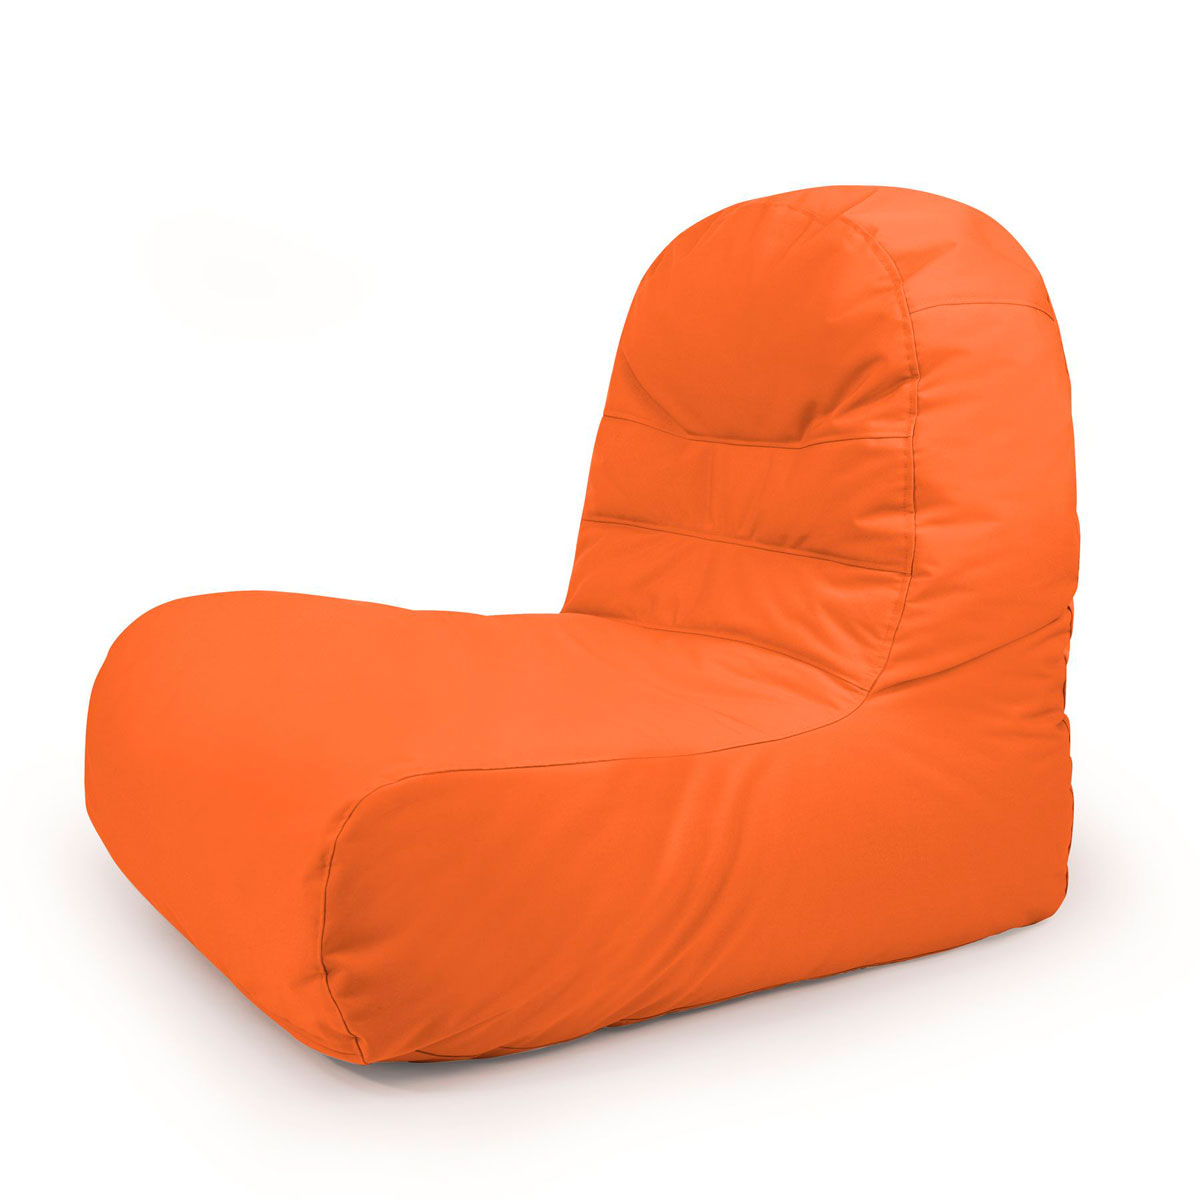 "Gartenstühle - Sitzsack ""Bridge Plus"", orange  - Onlineshop Hellweg"